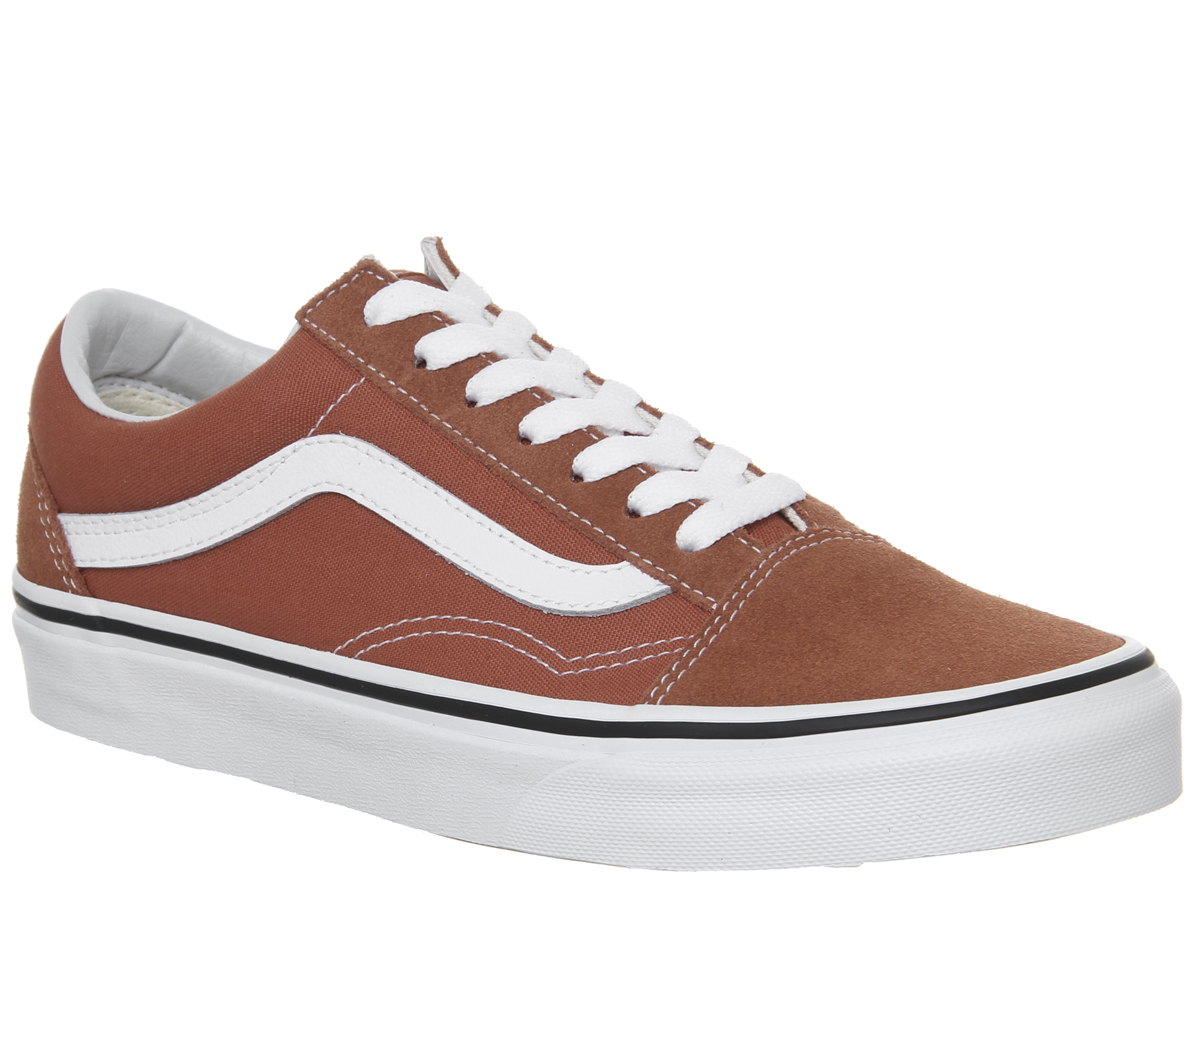 Sentinel Mens Vans Old Skool Trainers Hot Sauce True White Trainers Shoes 61e68992411